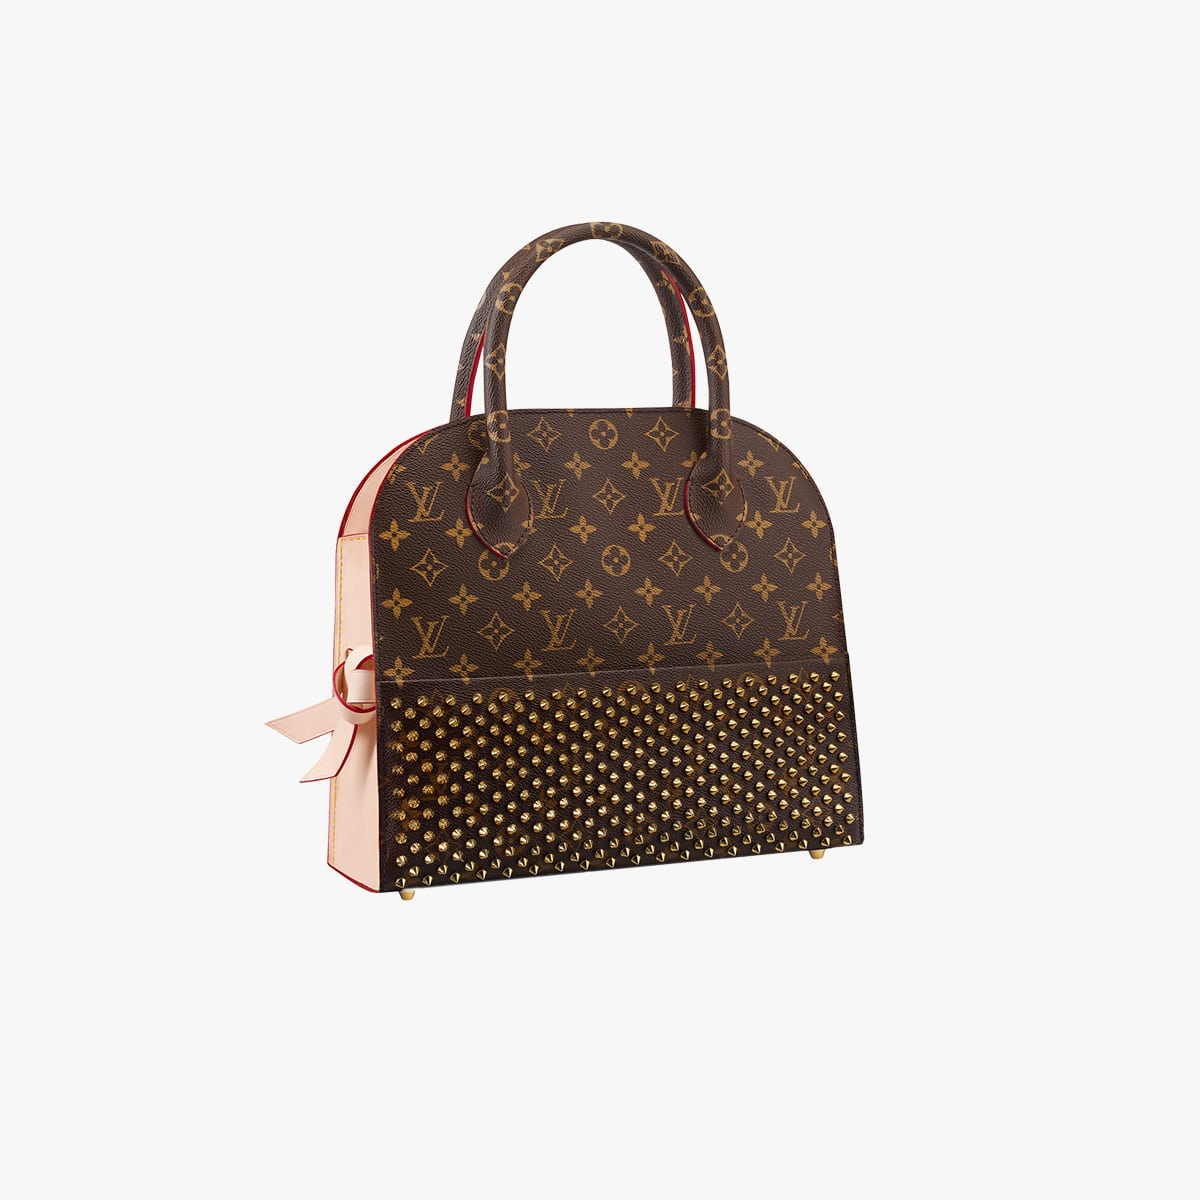 louis vuitton monogram iconoclasts bag collection reference guide spotted fashion. Black Bedroom Furniture Sets. Home Design Ideas